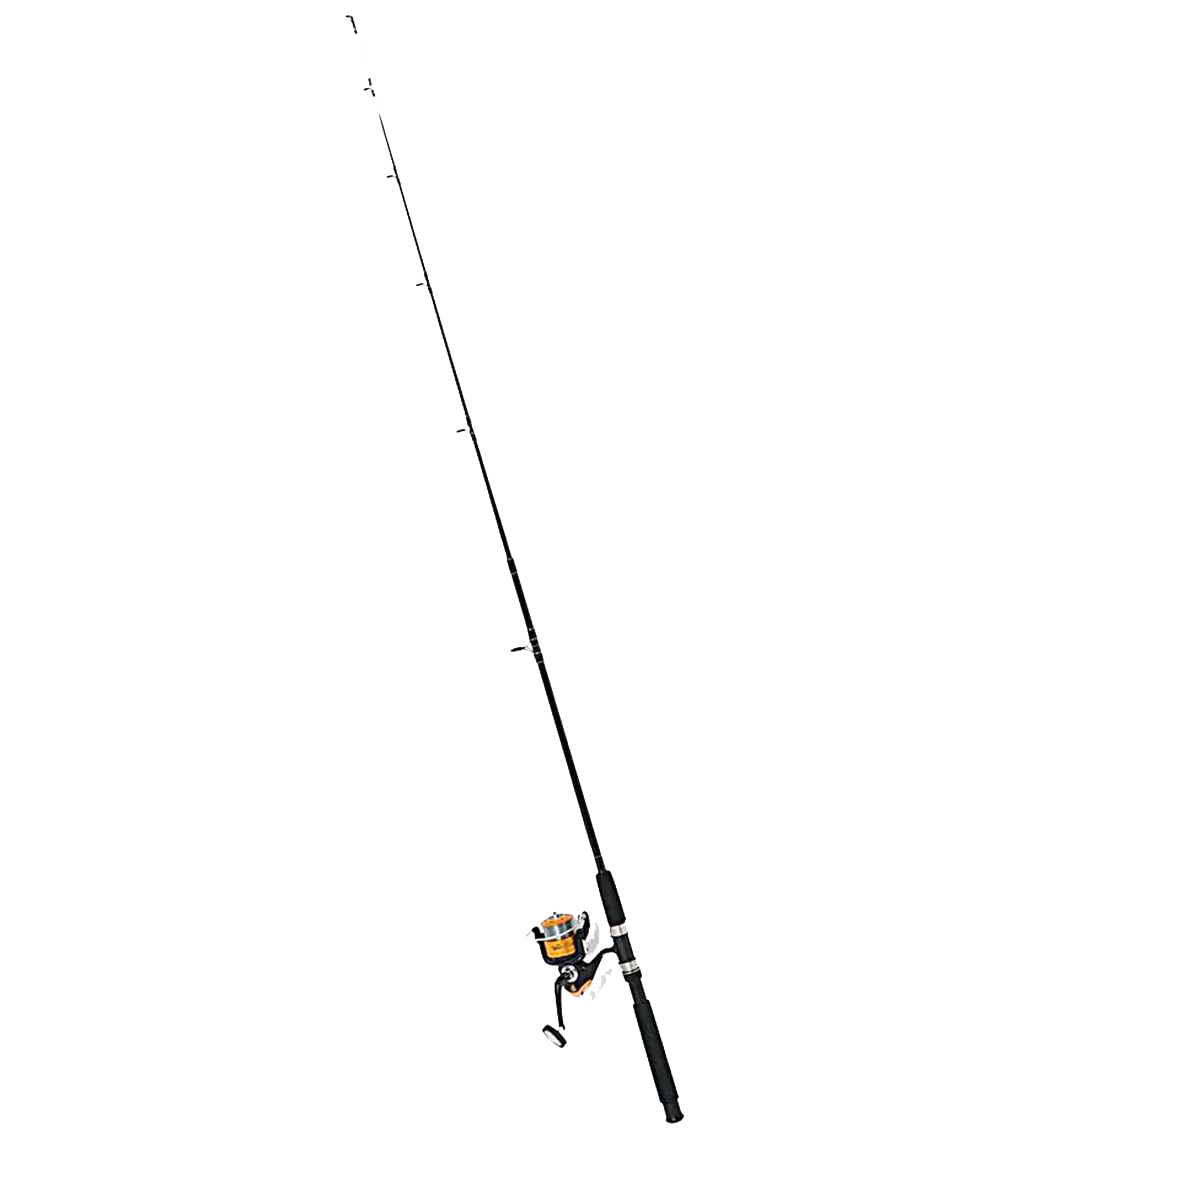 Fishing Pole Png PNG Image